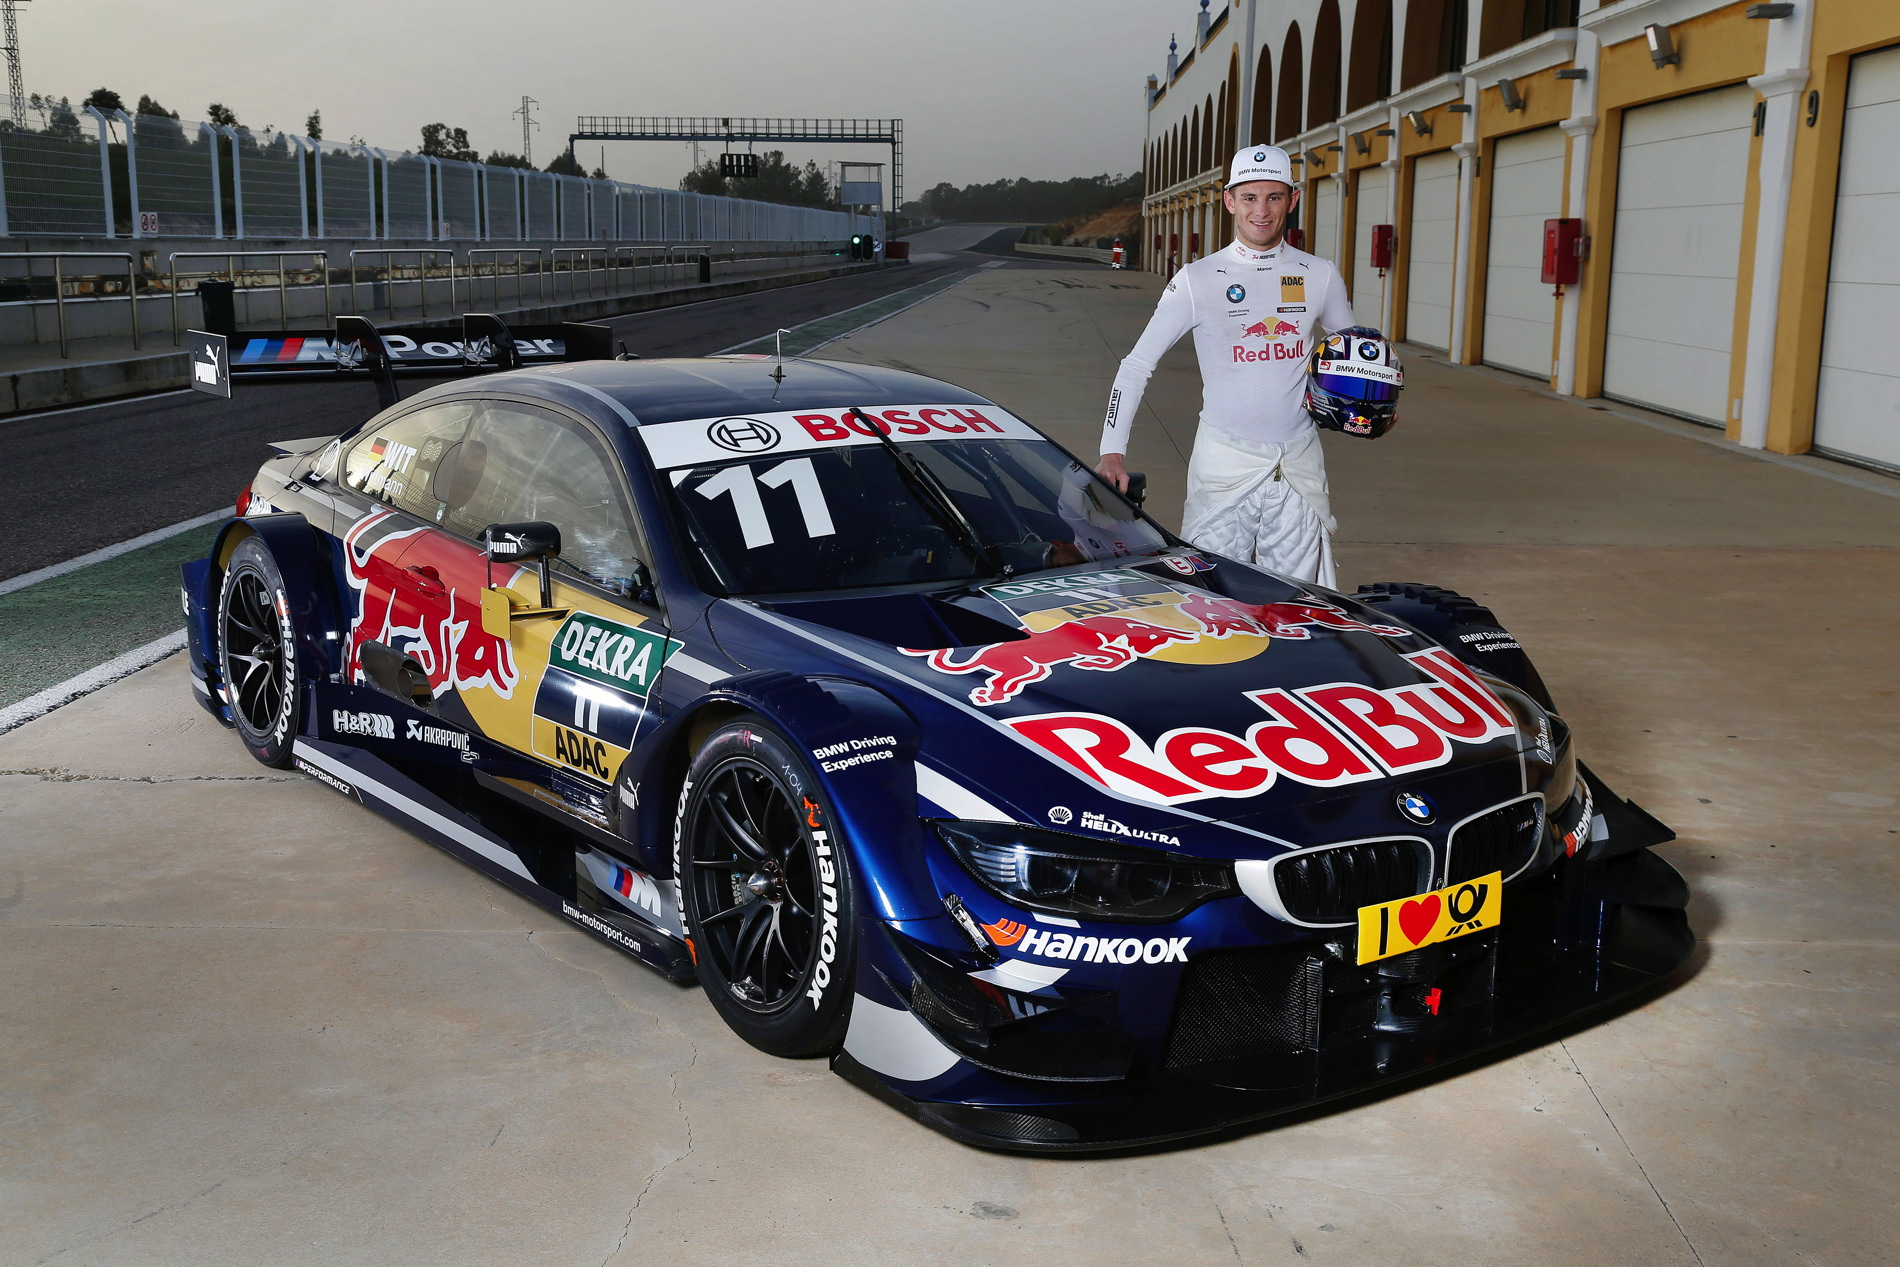 2014 Dtm Champion Marco Wittmann To Pilot For Red Bull Bmw